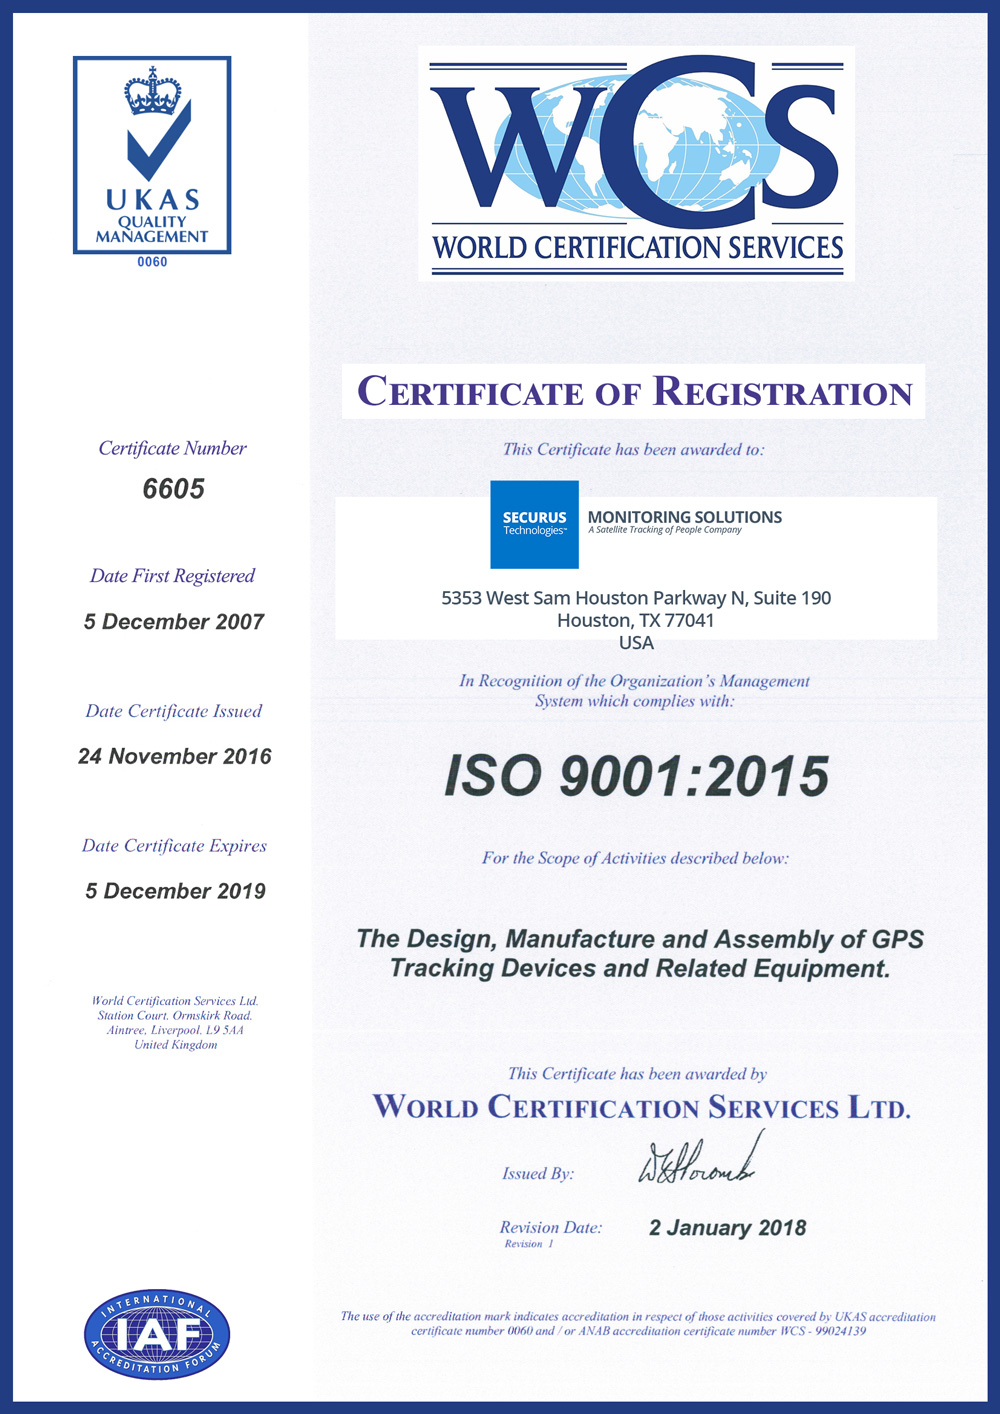 Securus Monitoring Solutions is ISO:9001 Certified